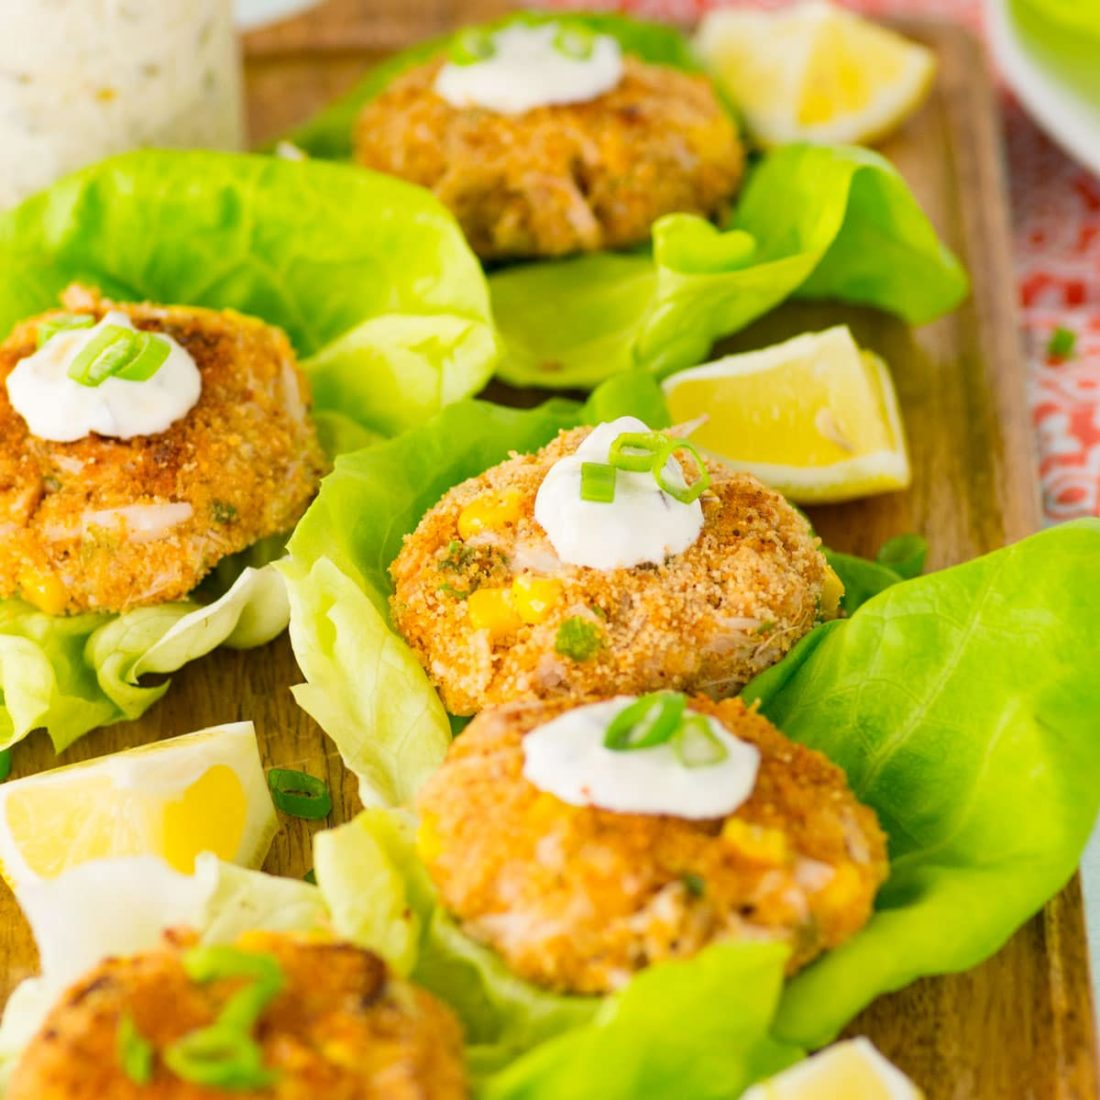 vegan crab cakes with jackfruit. served with lettuce, tartar sauce, and lemons